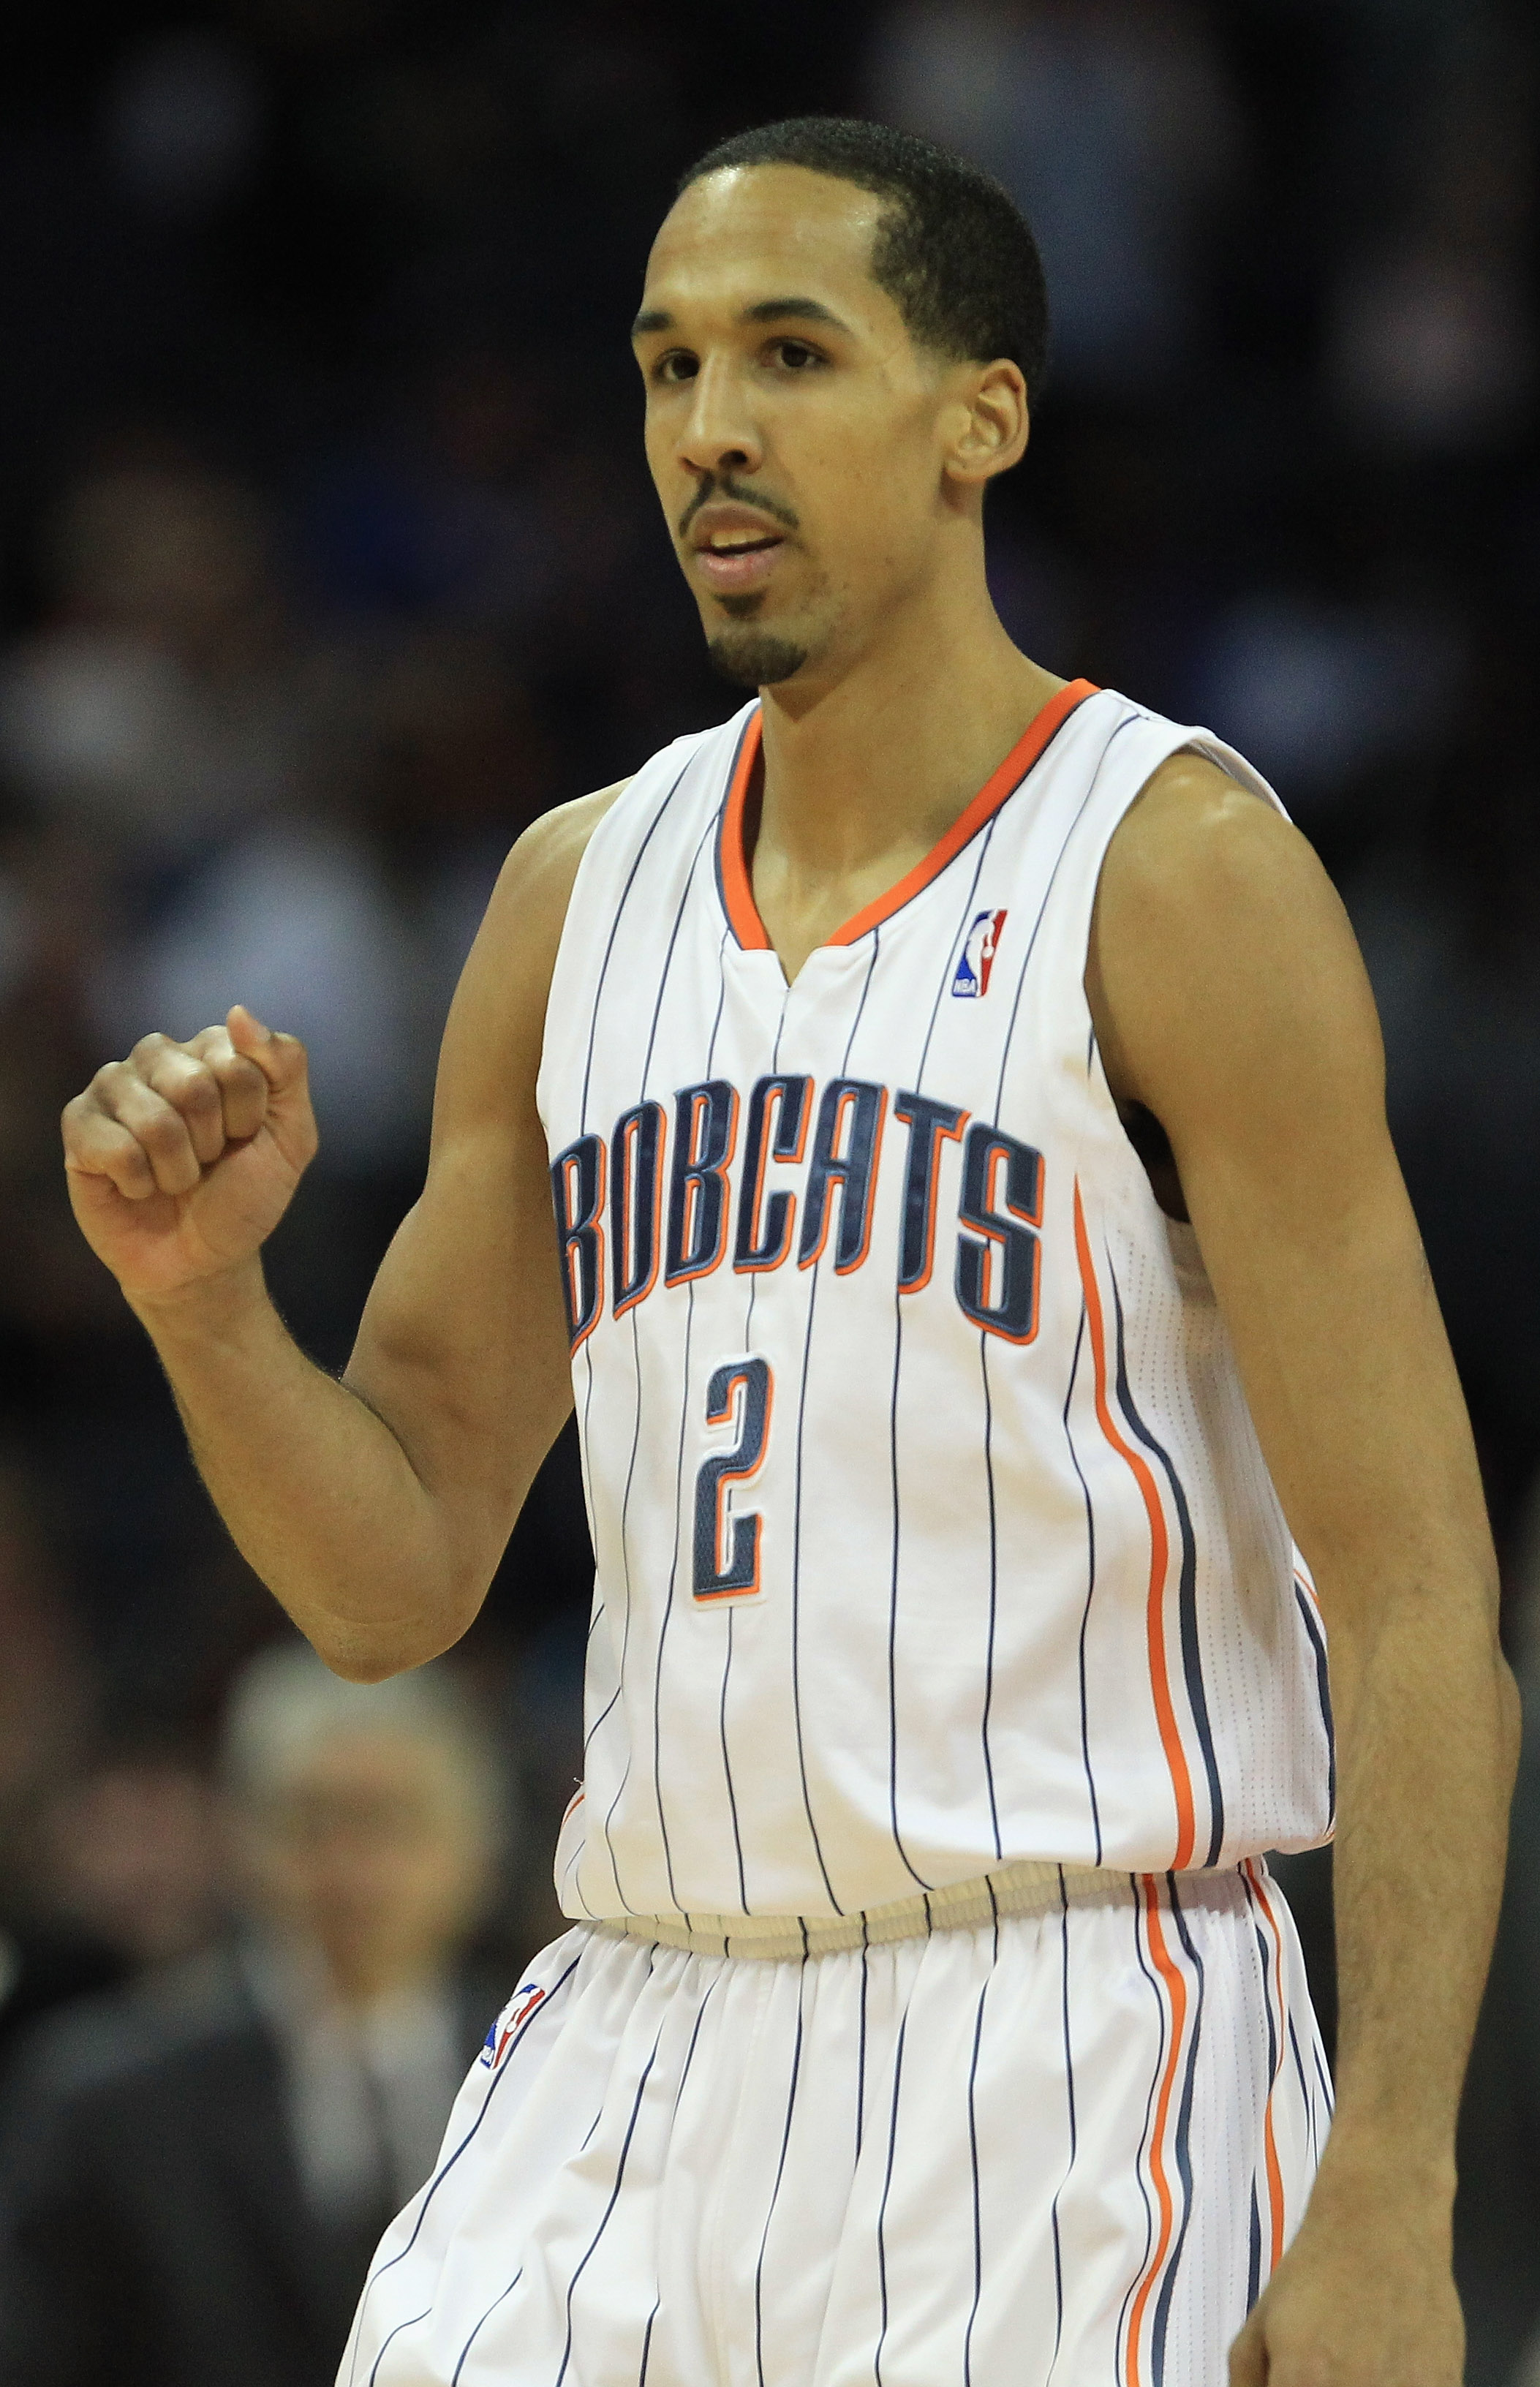 CHARLOTTE, NC - FEBRUARY 25:  Shaun Livingston #2 of the Charlotte Bobcats reacts after a play during their game against the Sacramento Kings at Time Warner Cable Arena on February 25, 2011 in Charlotte, North Carolina. NOTE TO USER: User expressly acknow